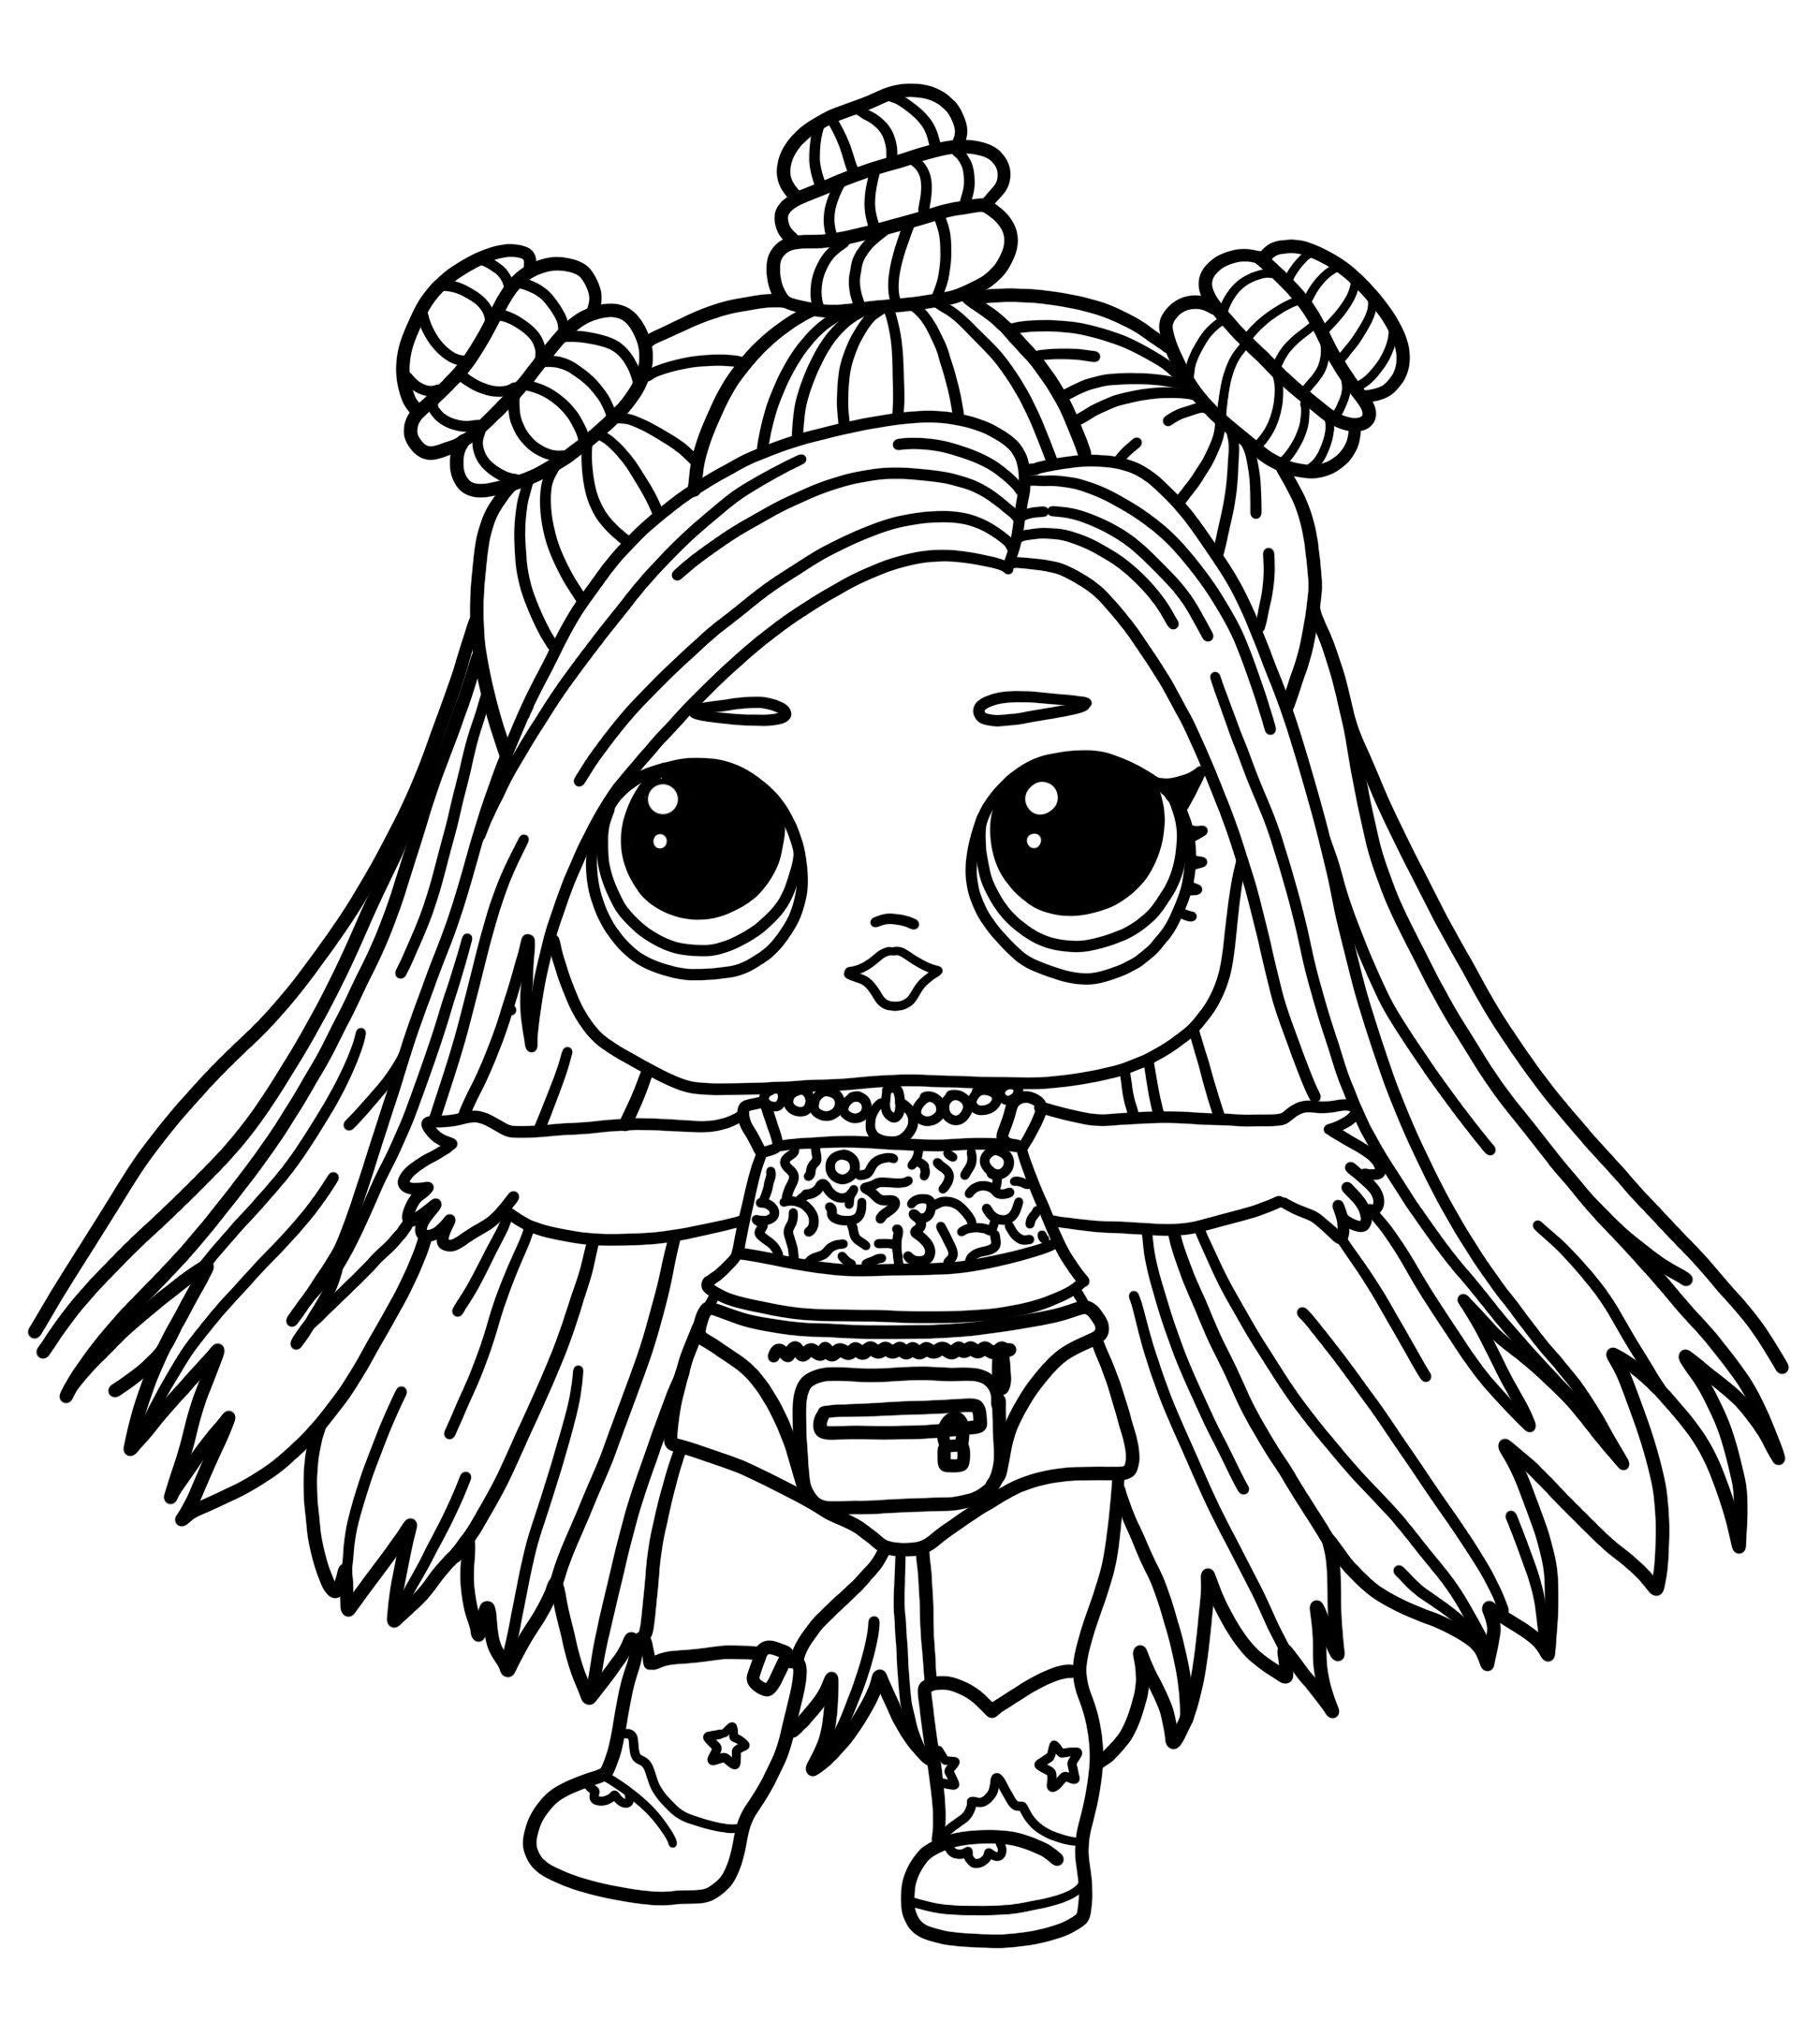 42 Coloring Pages For Lol In 2020 Animal Coloring Pages Unicorn Coloring Pages Cute Coloring Pages